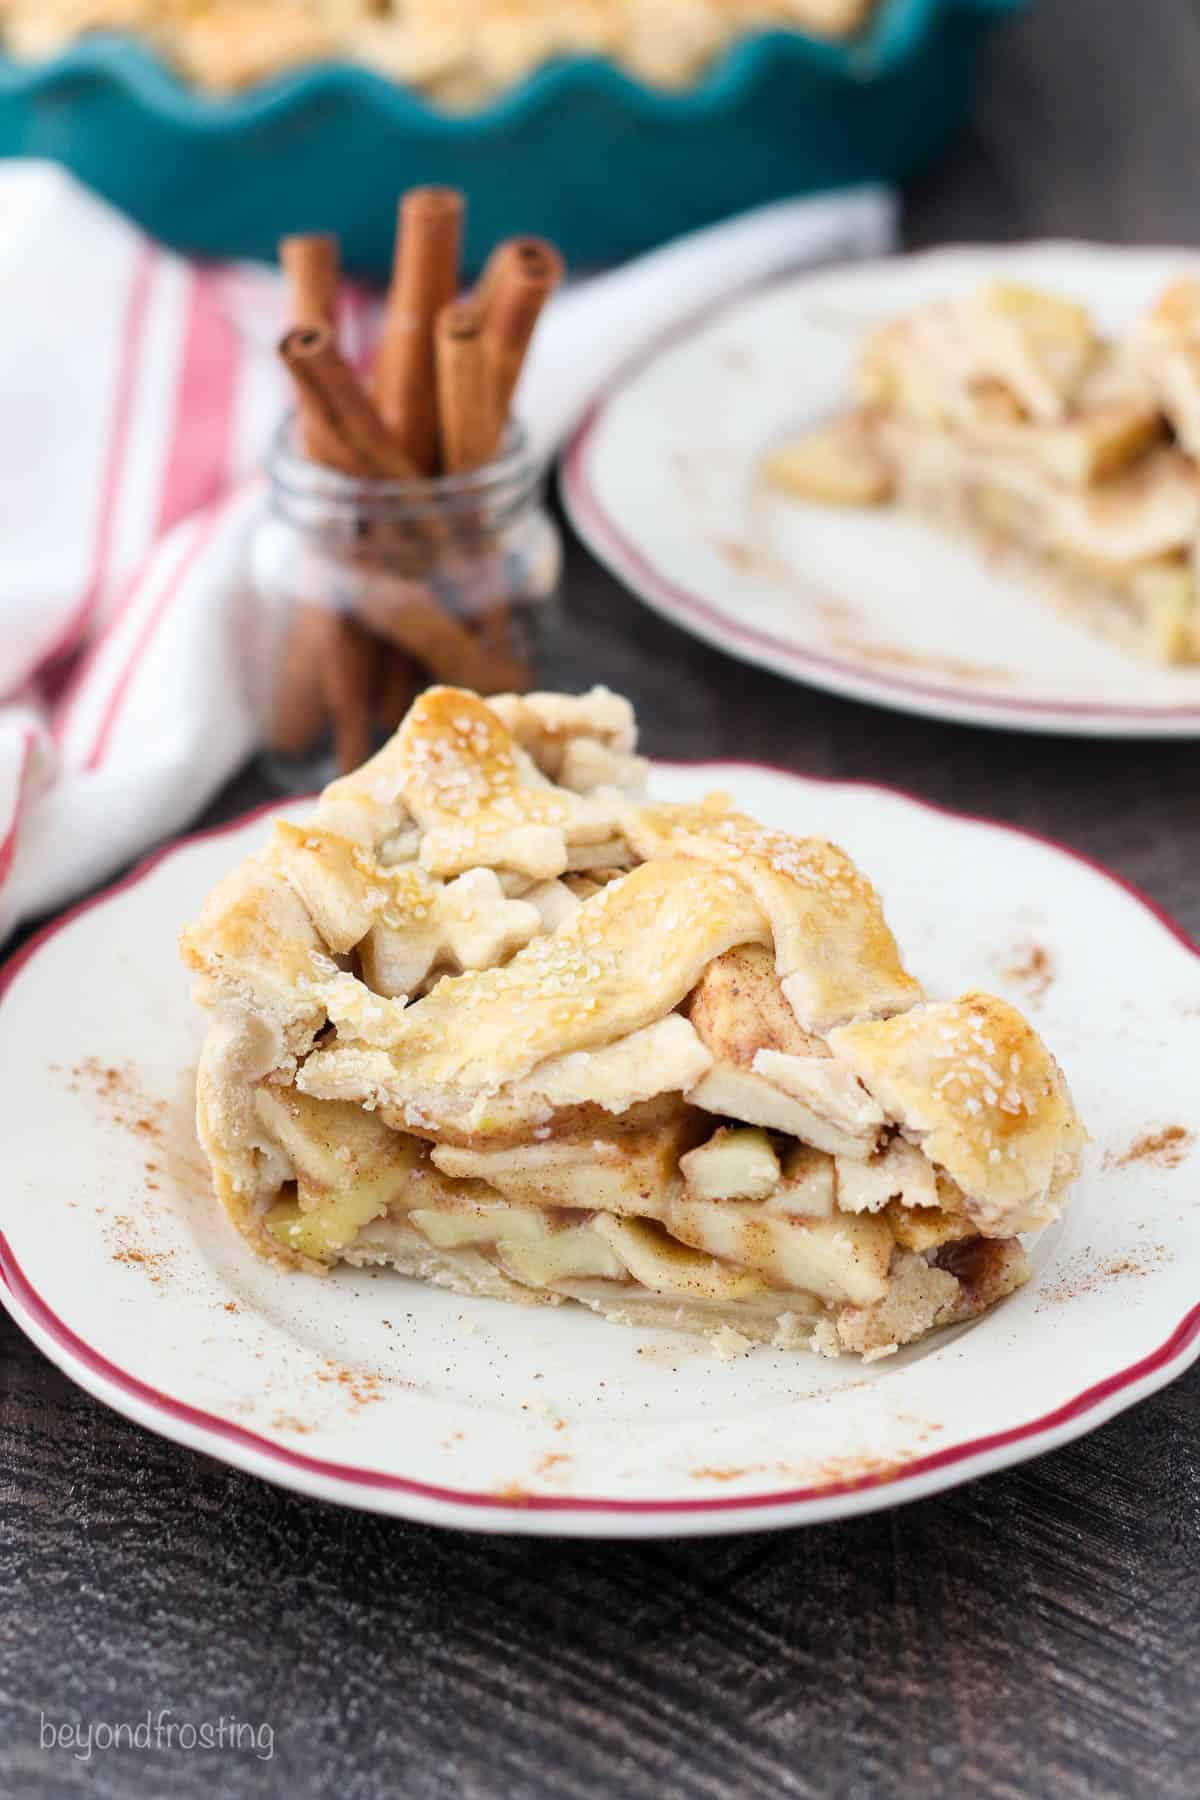 A perfect slice of layers of apple pie with a lattice crust